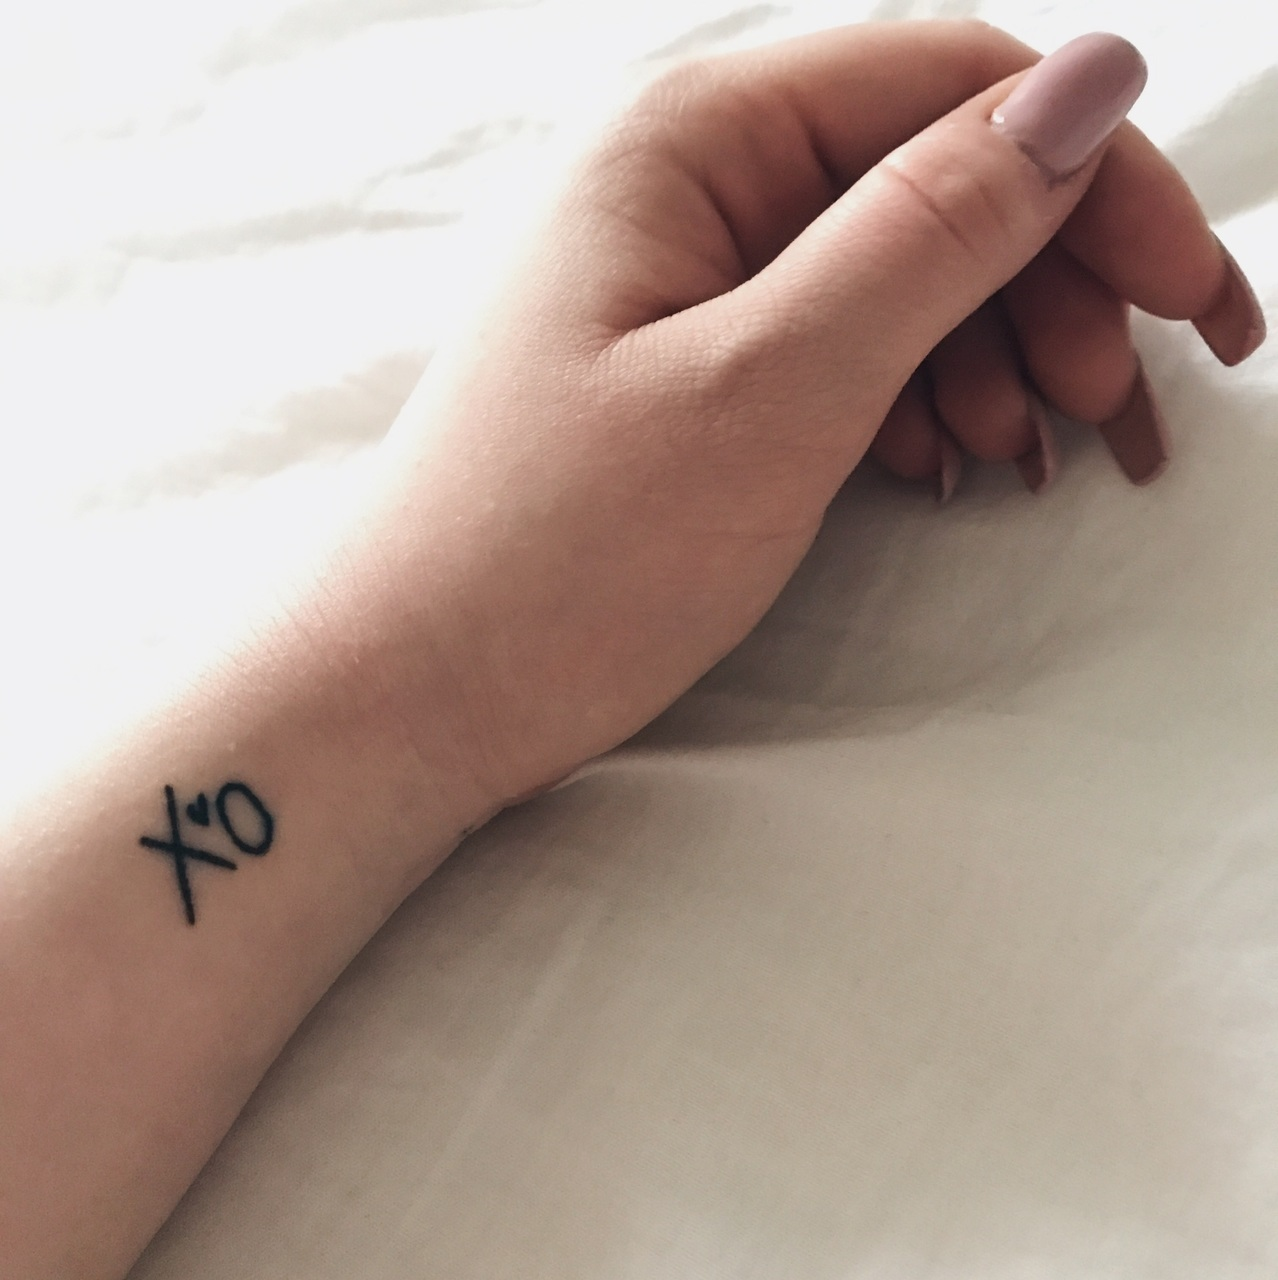 133 Images About T A T T O O S On We Heart It See More About Tattoo Ink And Flowers